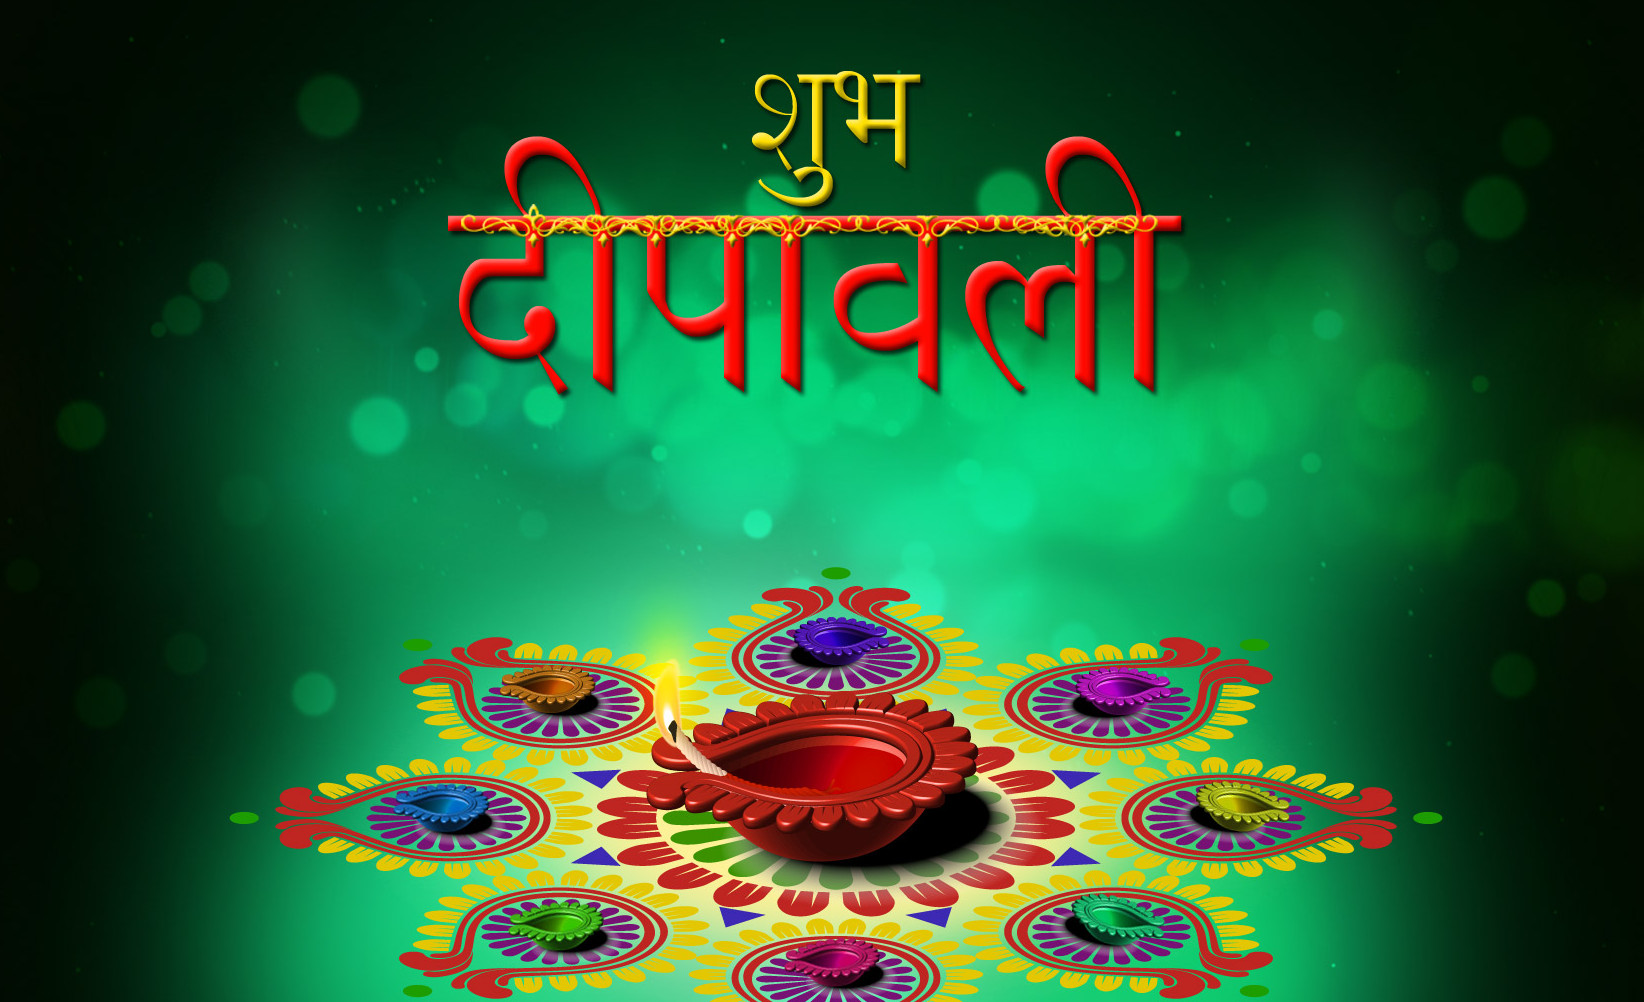 Hindi Happy Diwali Wishes & Shubh Deepavali Shubhkamnaye